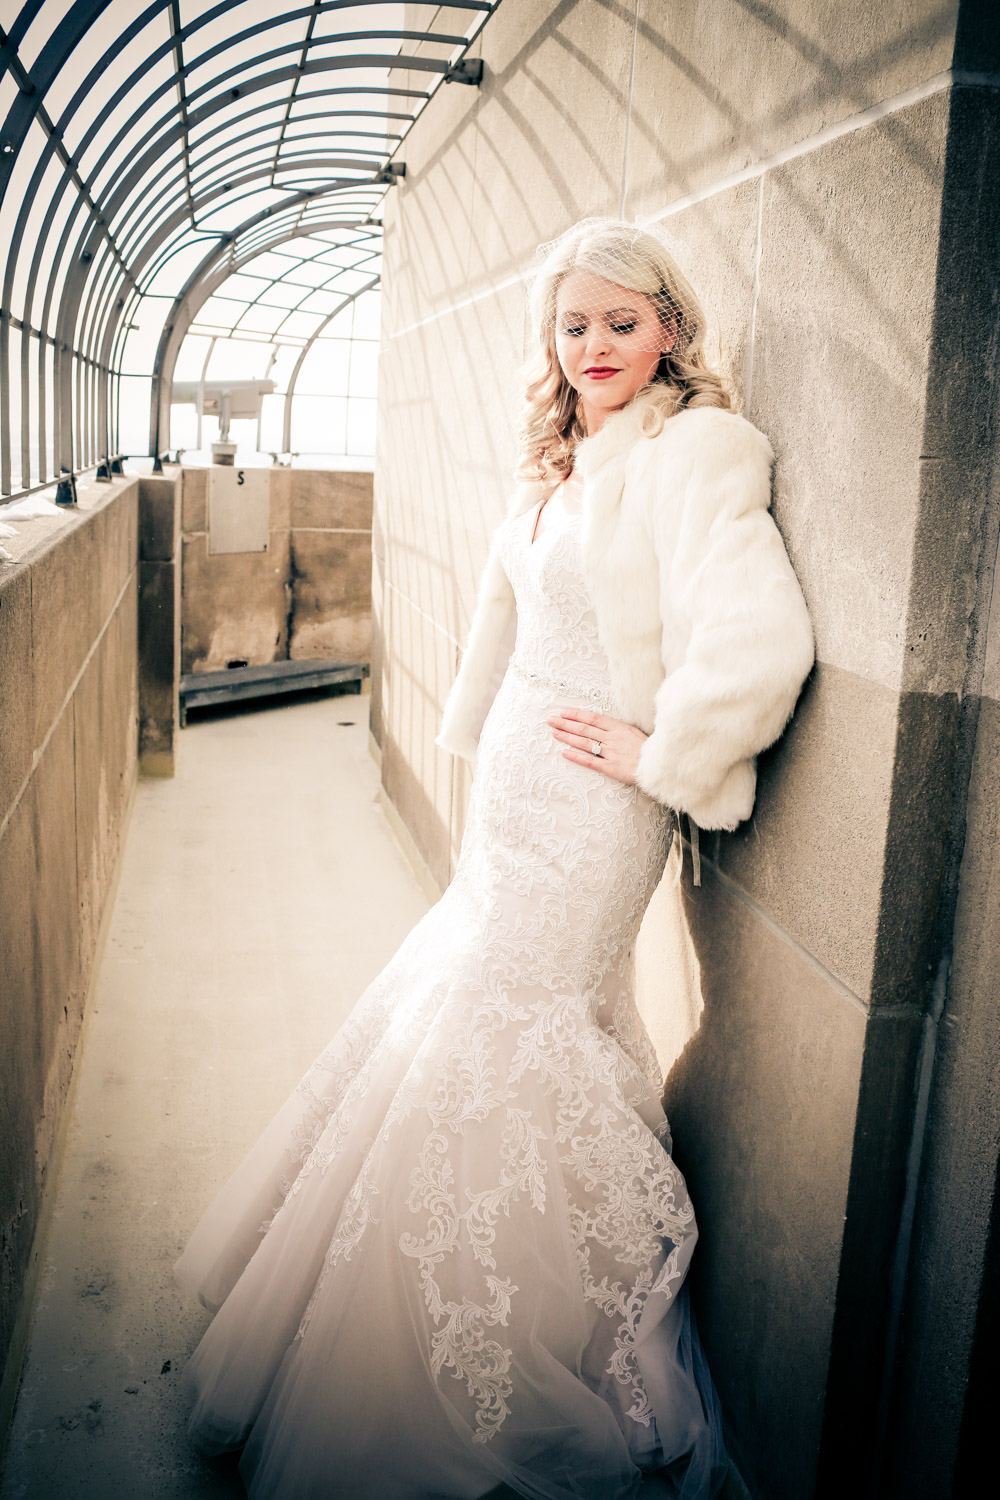 Brett-Dorrian-Artistry-Studios-Minneapolis-Minnesota-Bridal-Hair-And-Makeup-Studio